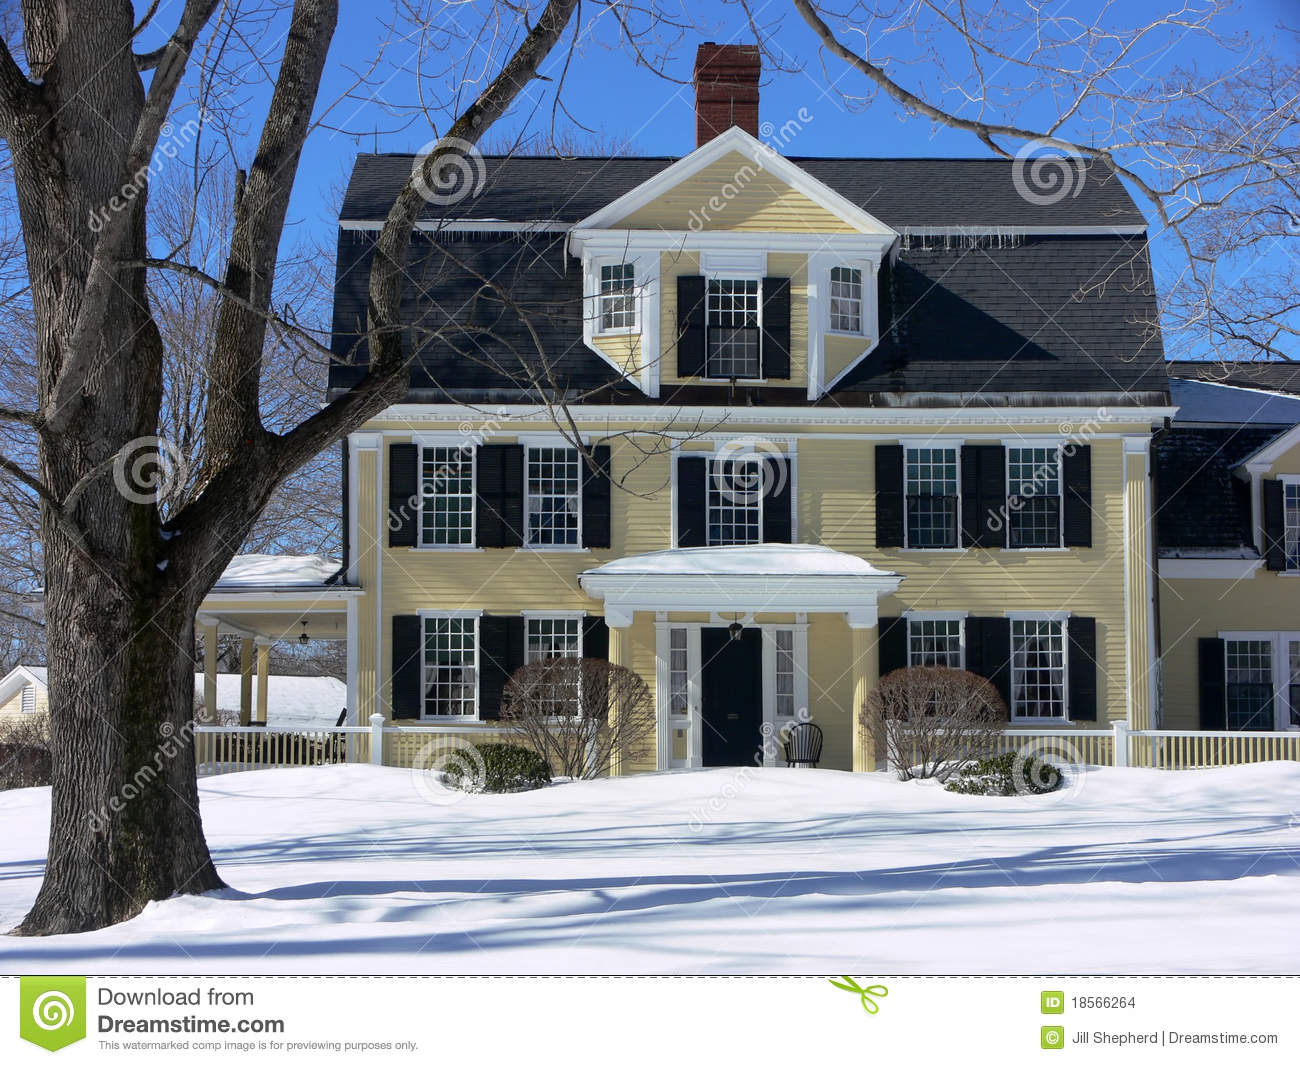 Winter new england house in snow stock photo image for New england house